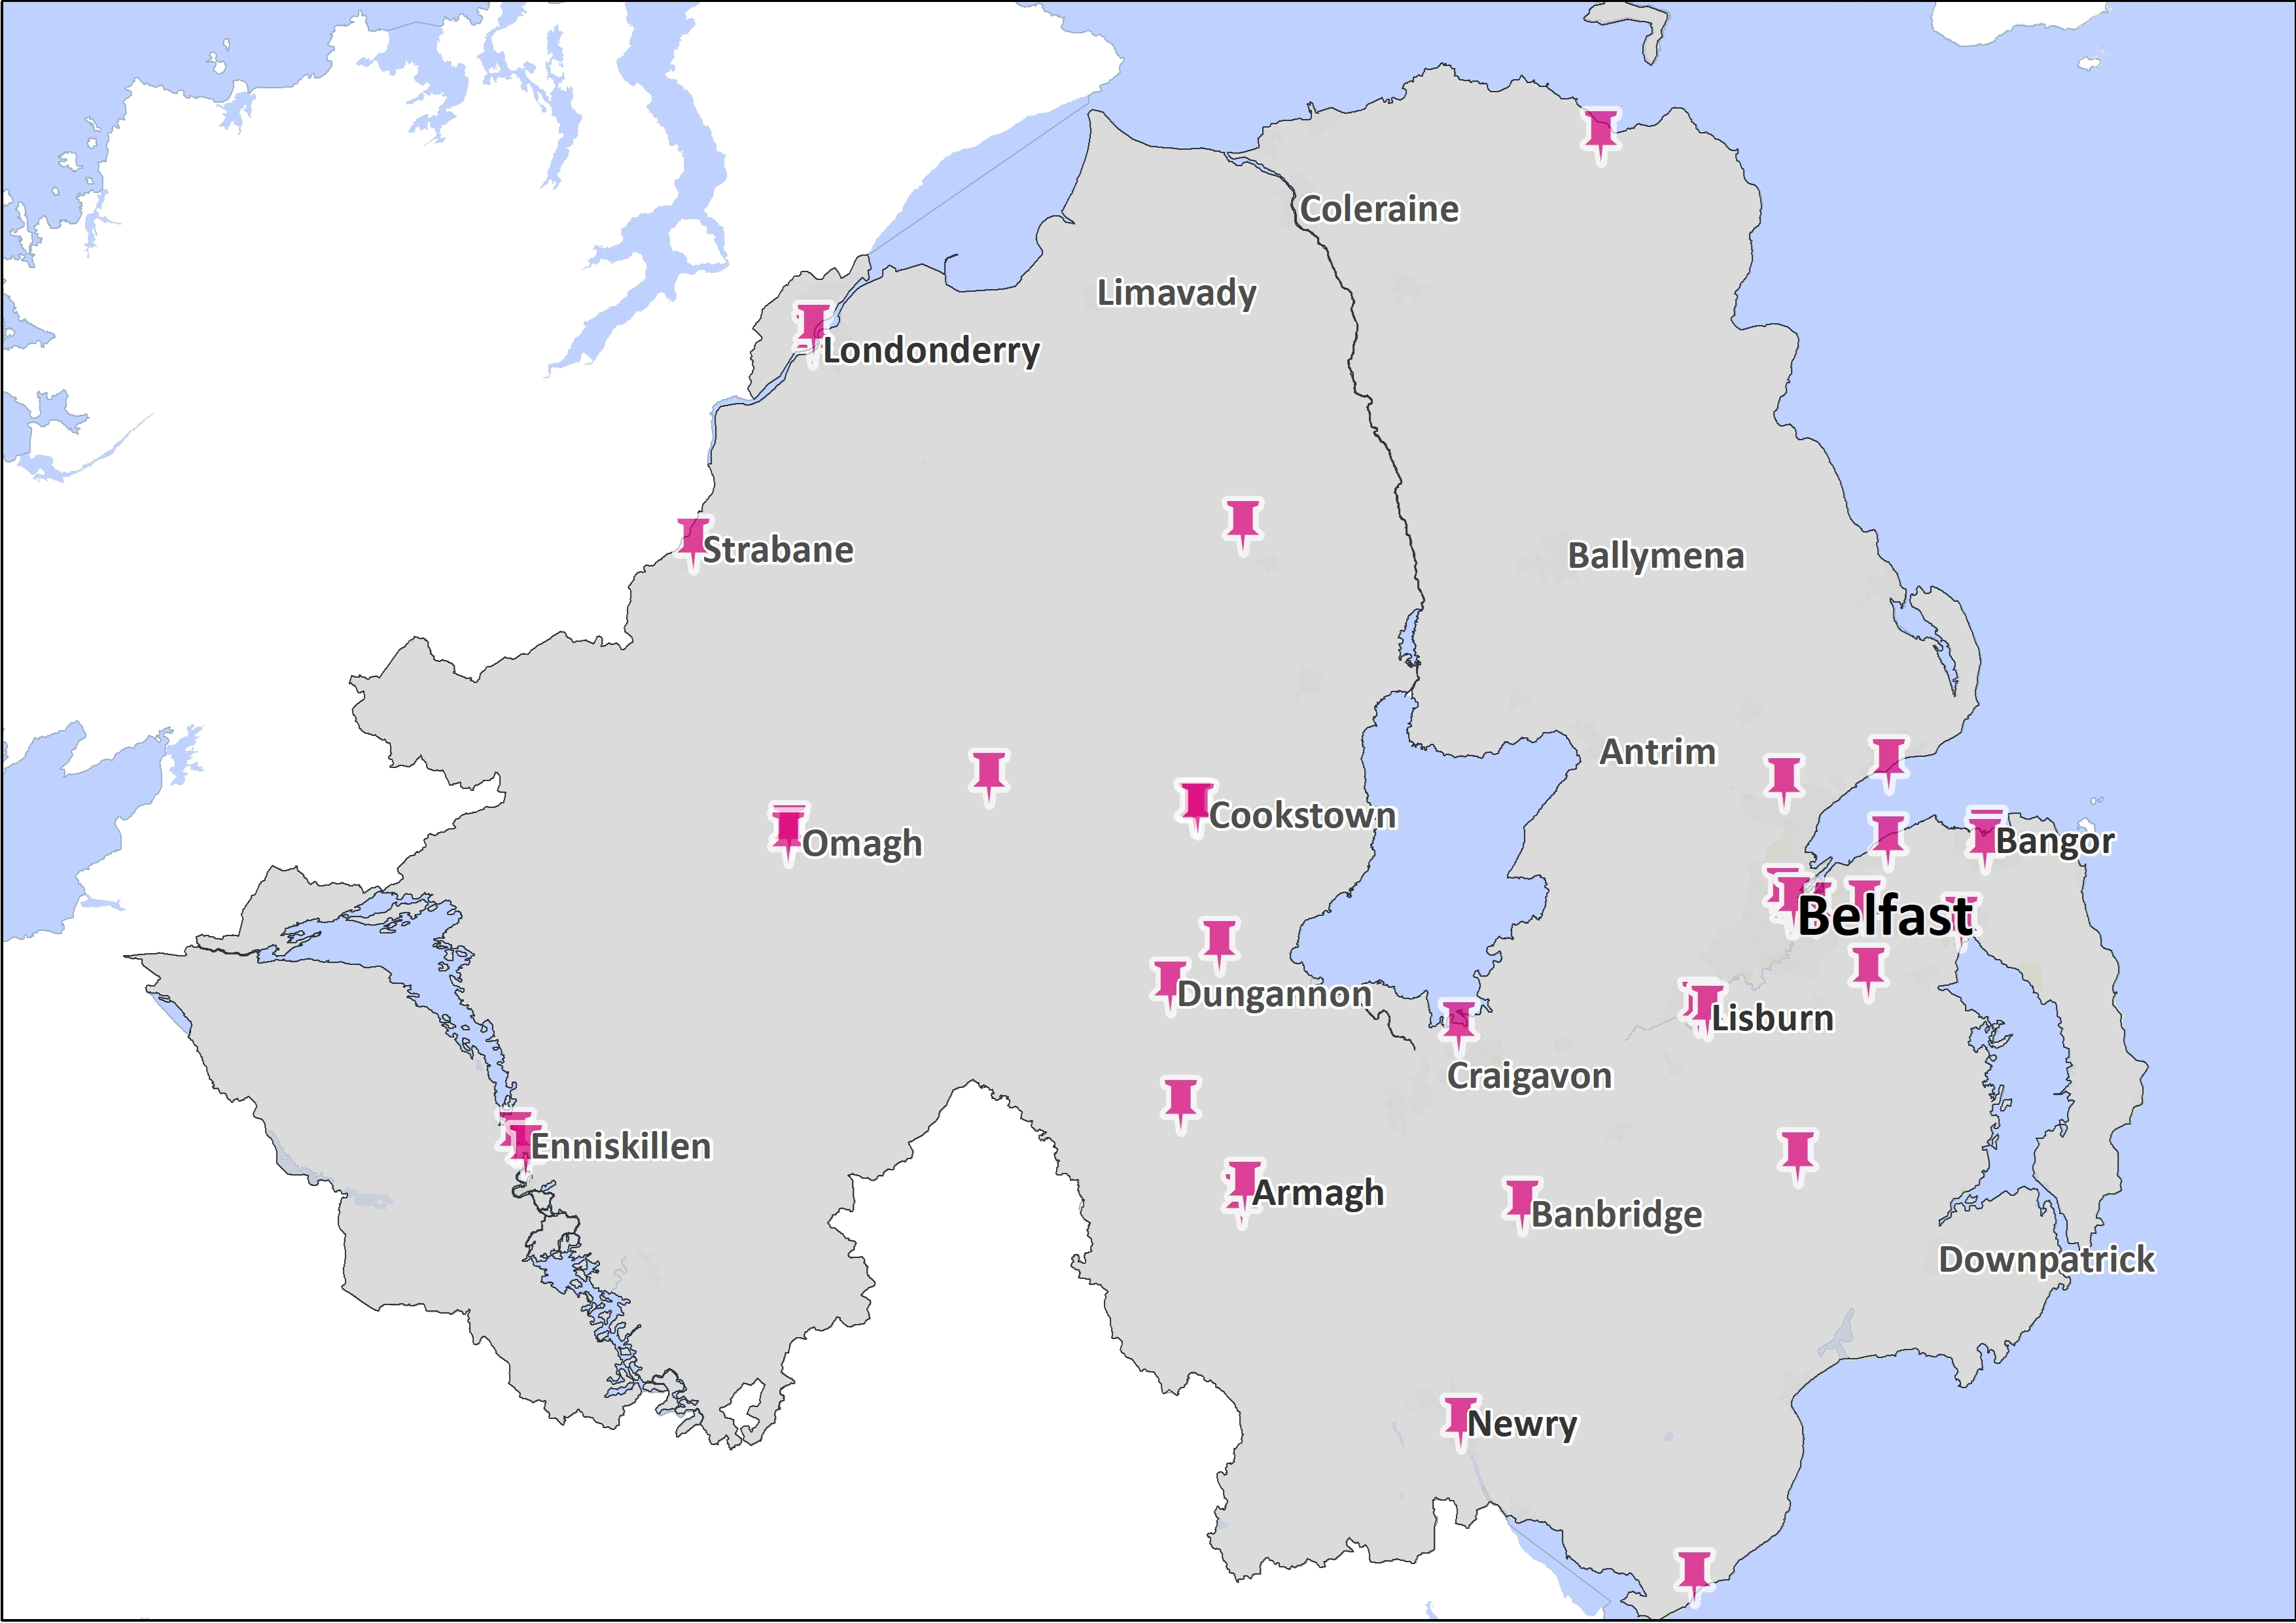 Map of Northern Ireland with pink push pins highlighting towns across the country.